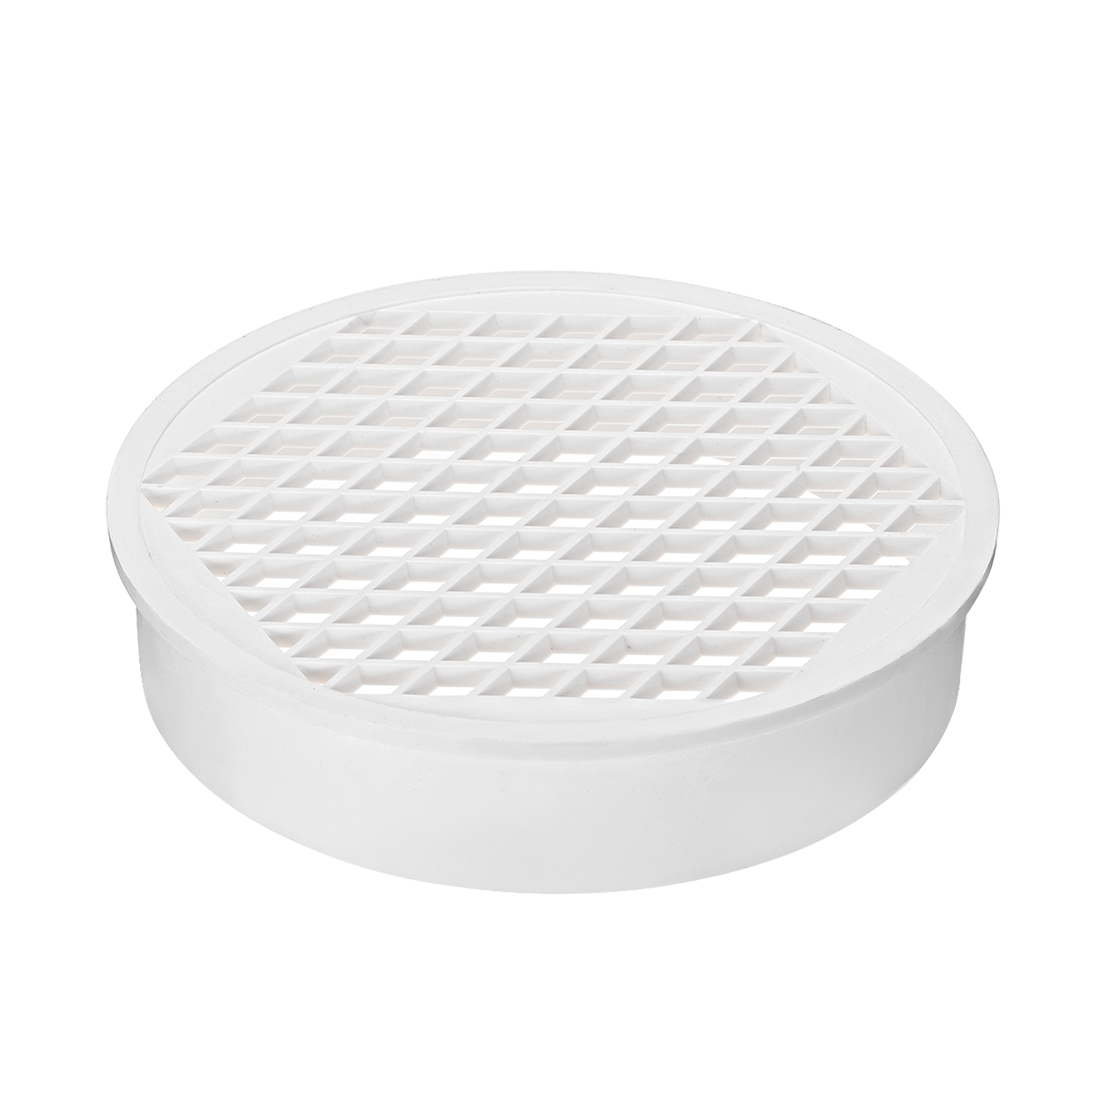 PVC Snap-In Floor Drain 8-inch Drain Cover Bathroom Sink And Tub Drain Strainers